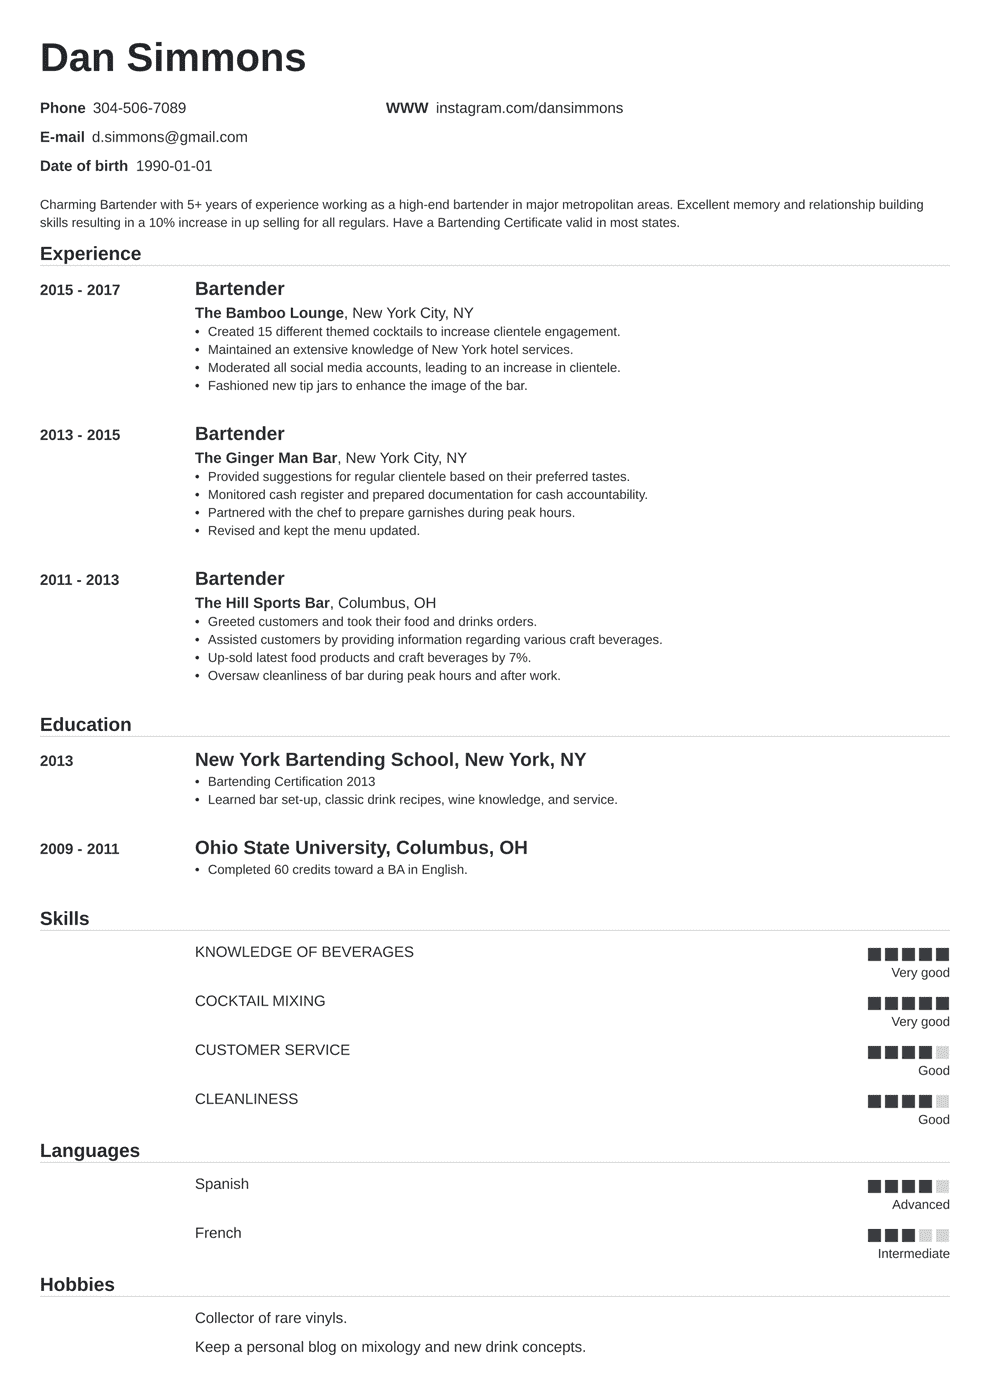 Bartender Resume Templates Free Resume Examples Bartender Resume Templates Free Bartender Resume T Resume Examples Job Resume Examples Resume Template Examples